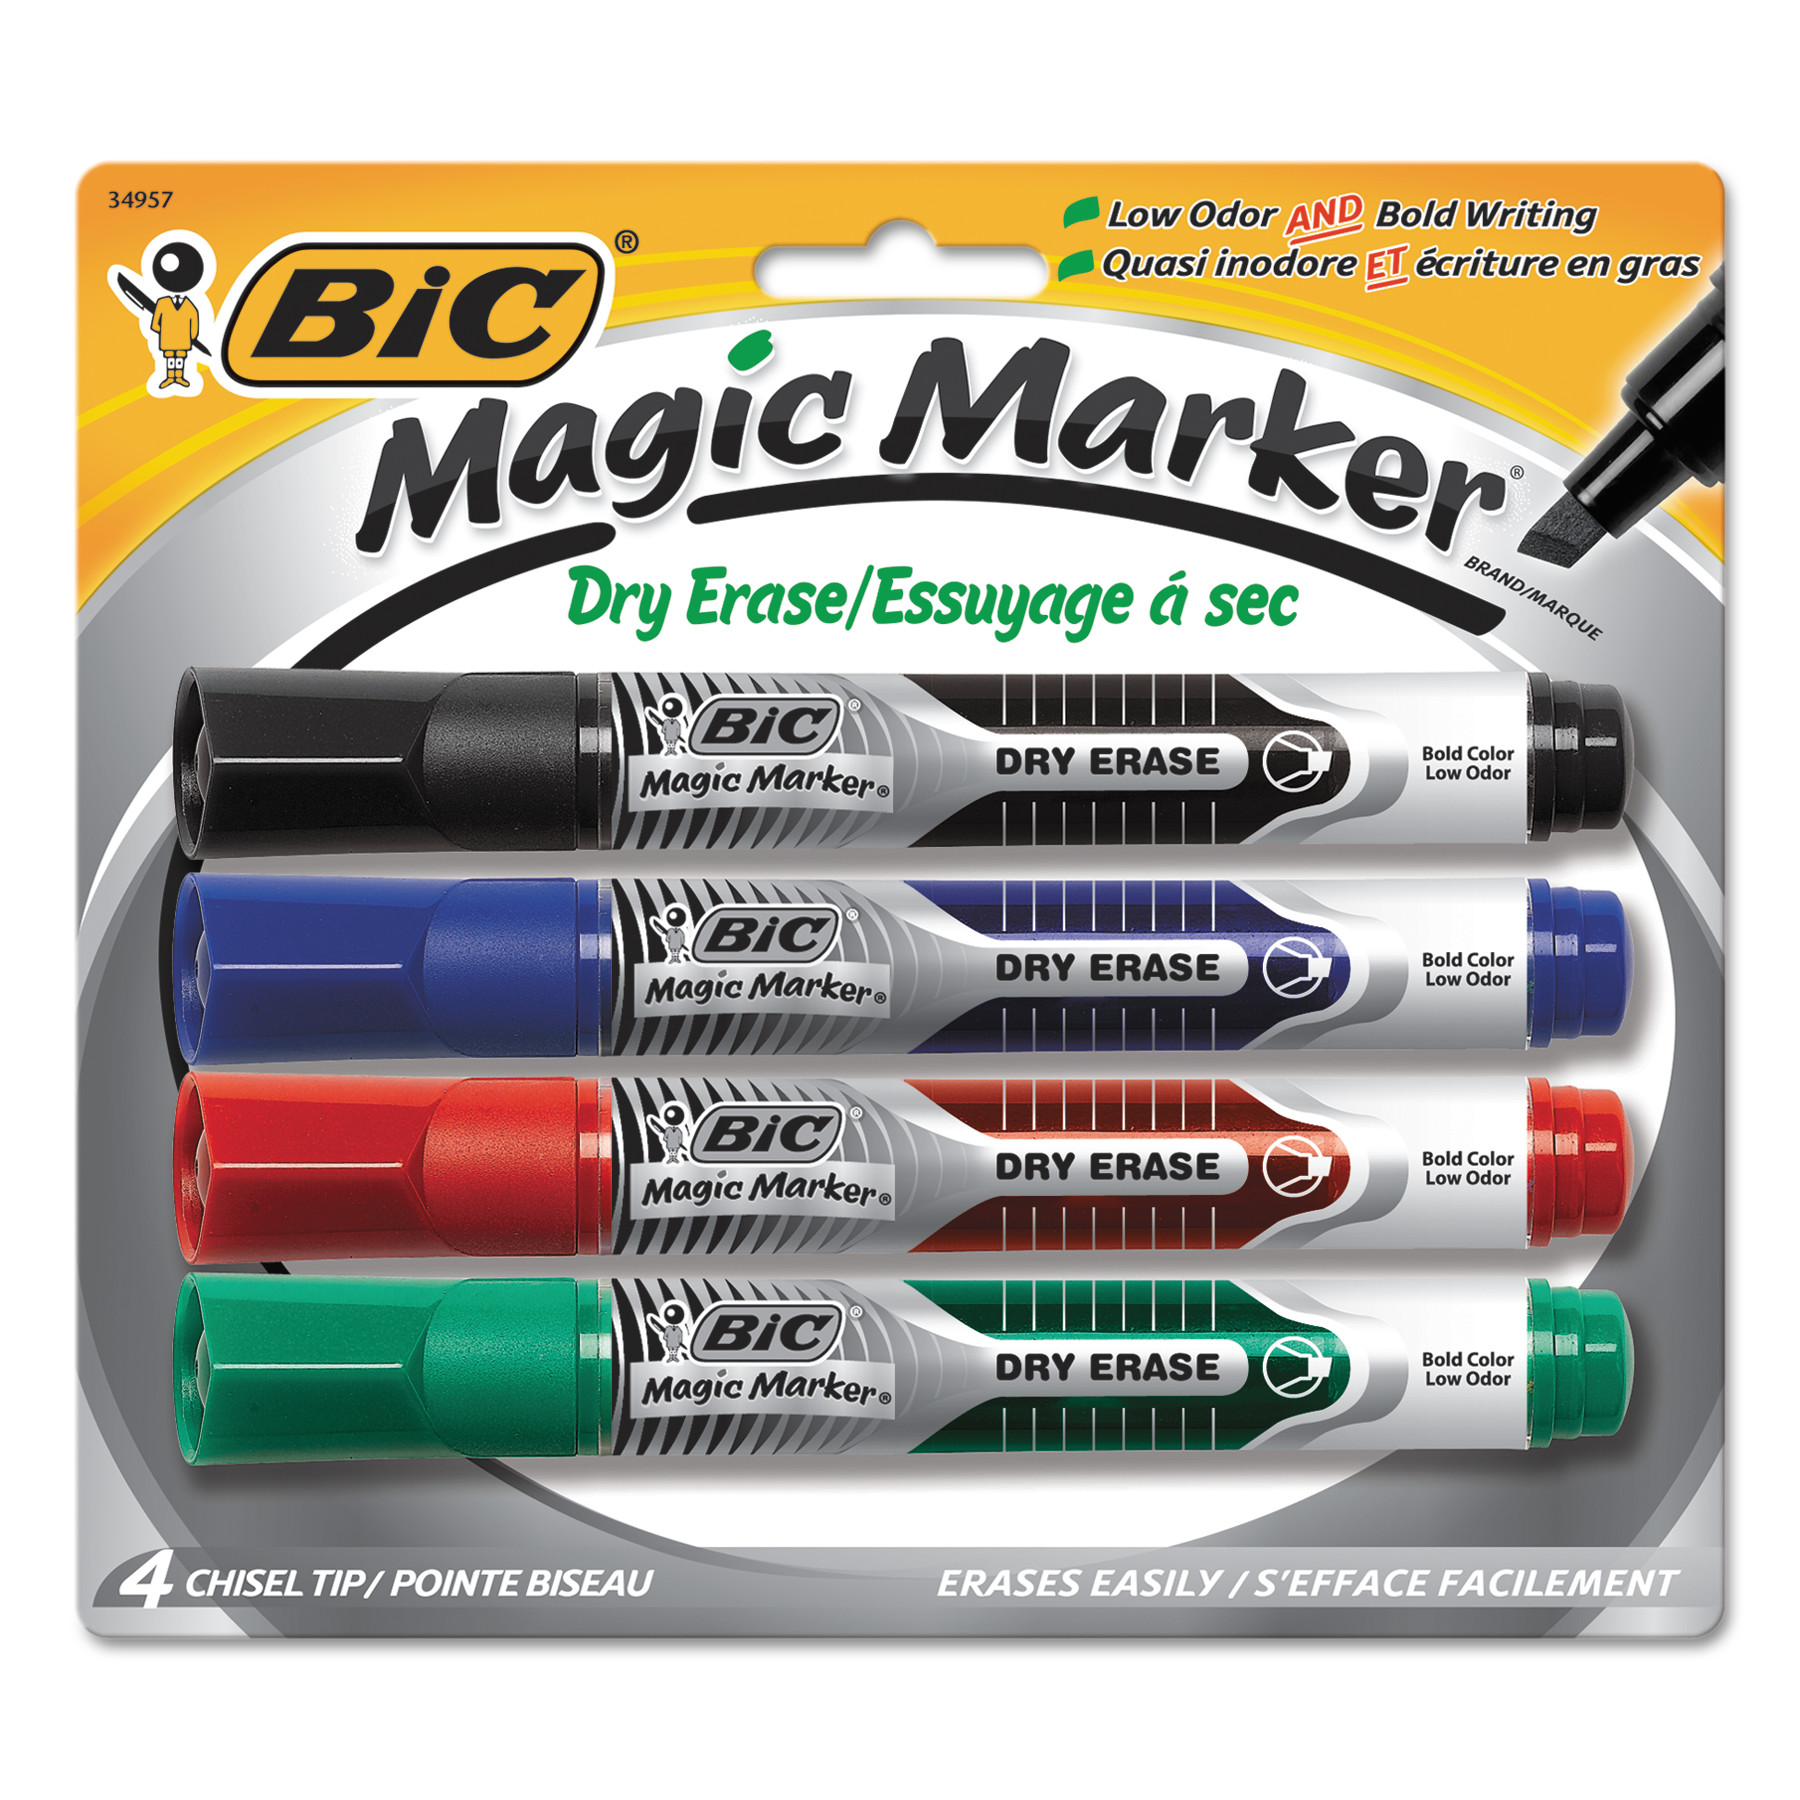 BIC Magic Marker Dry Erase Markers, Chisel Tip, 4 Count